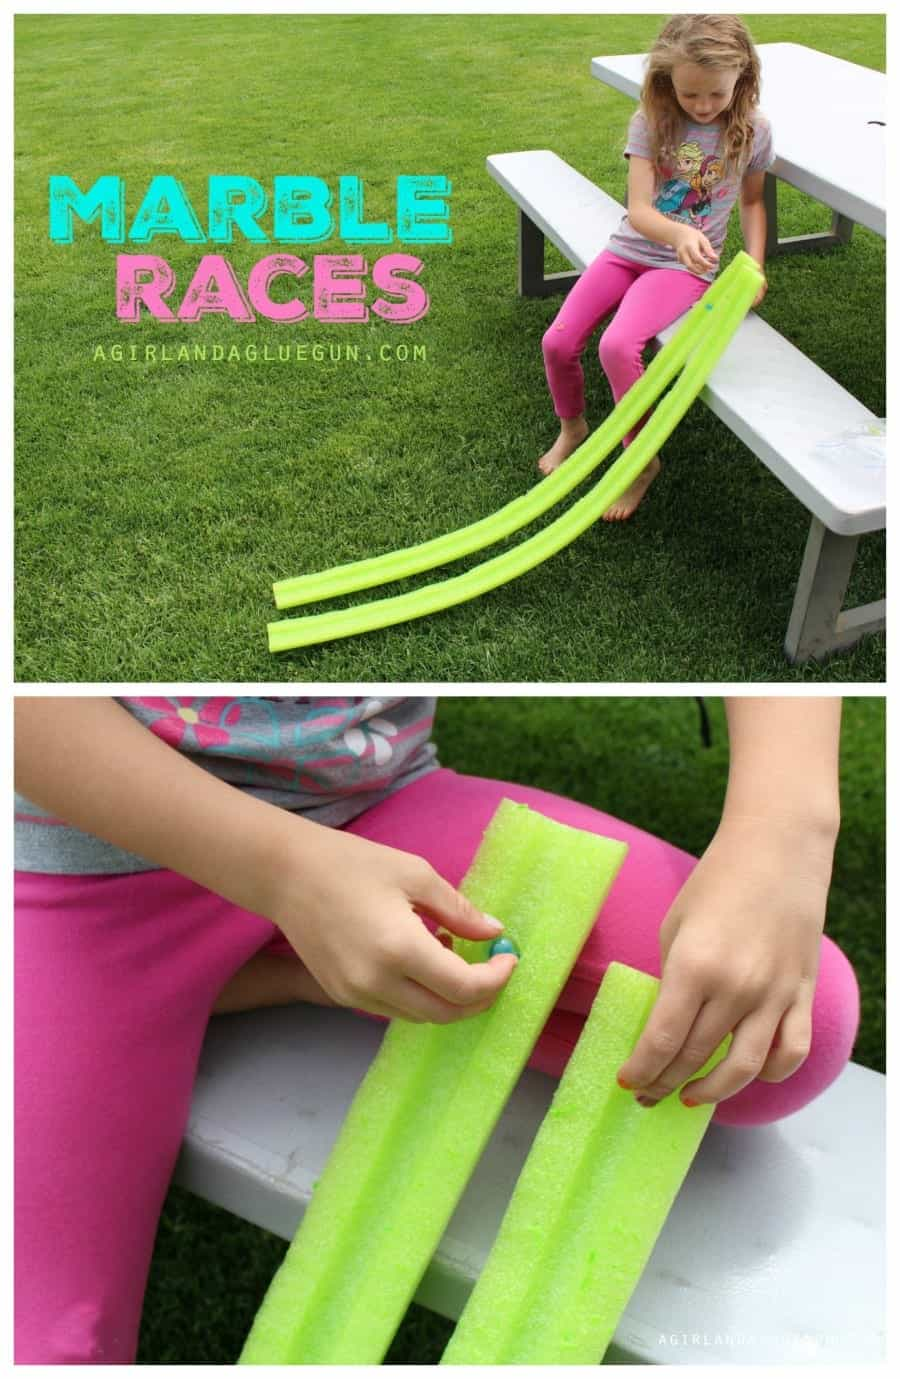 marble races using a pool noodle